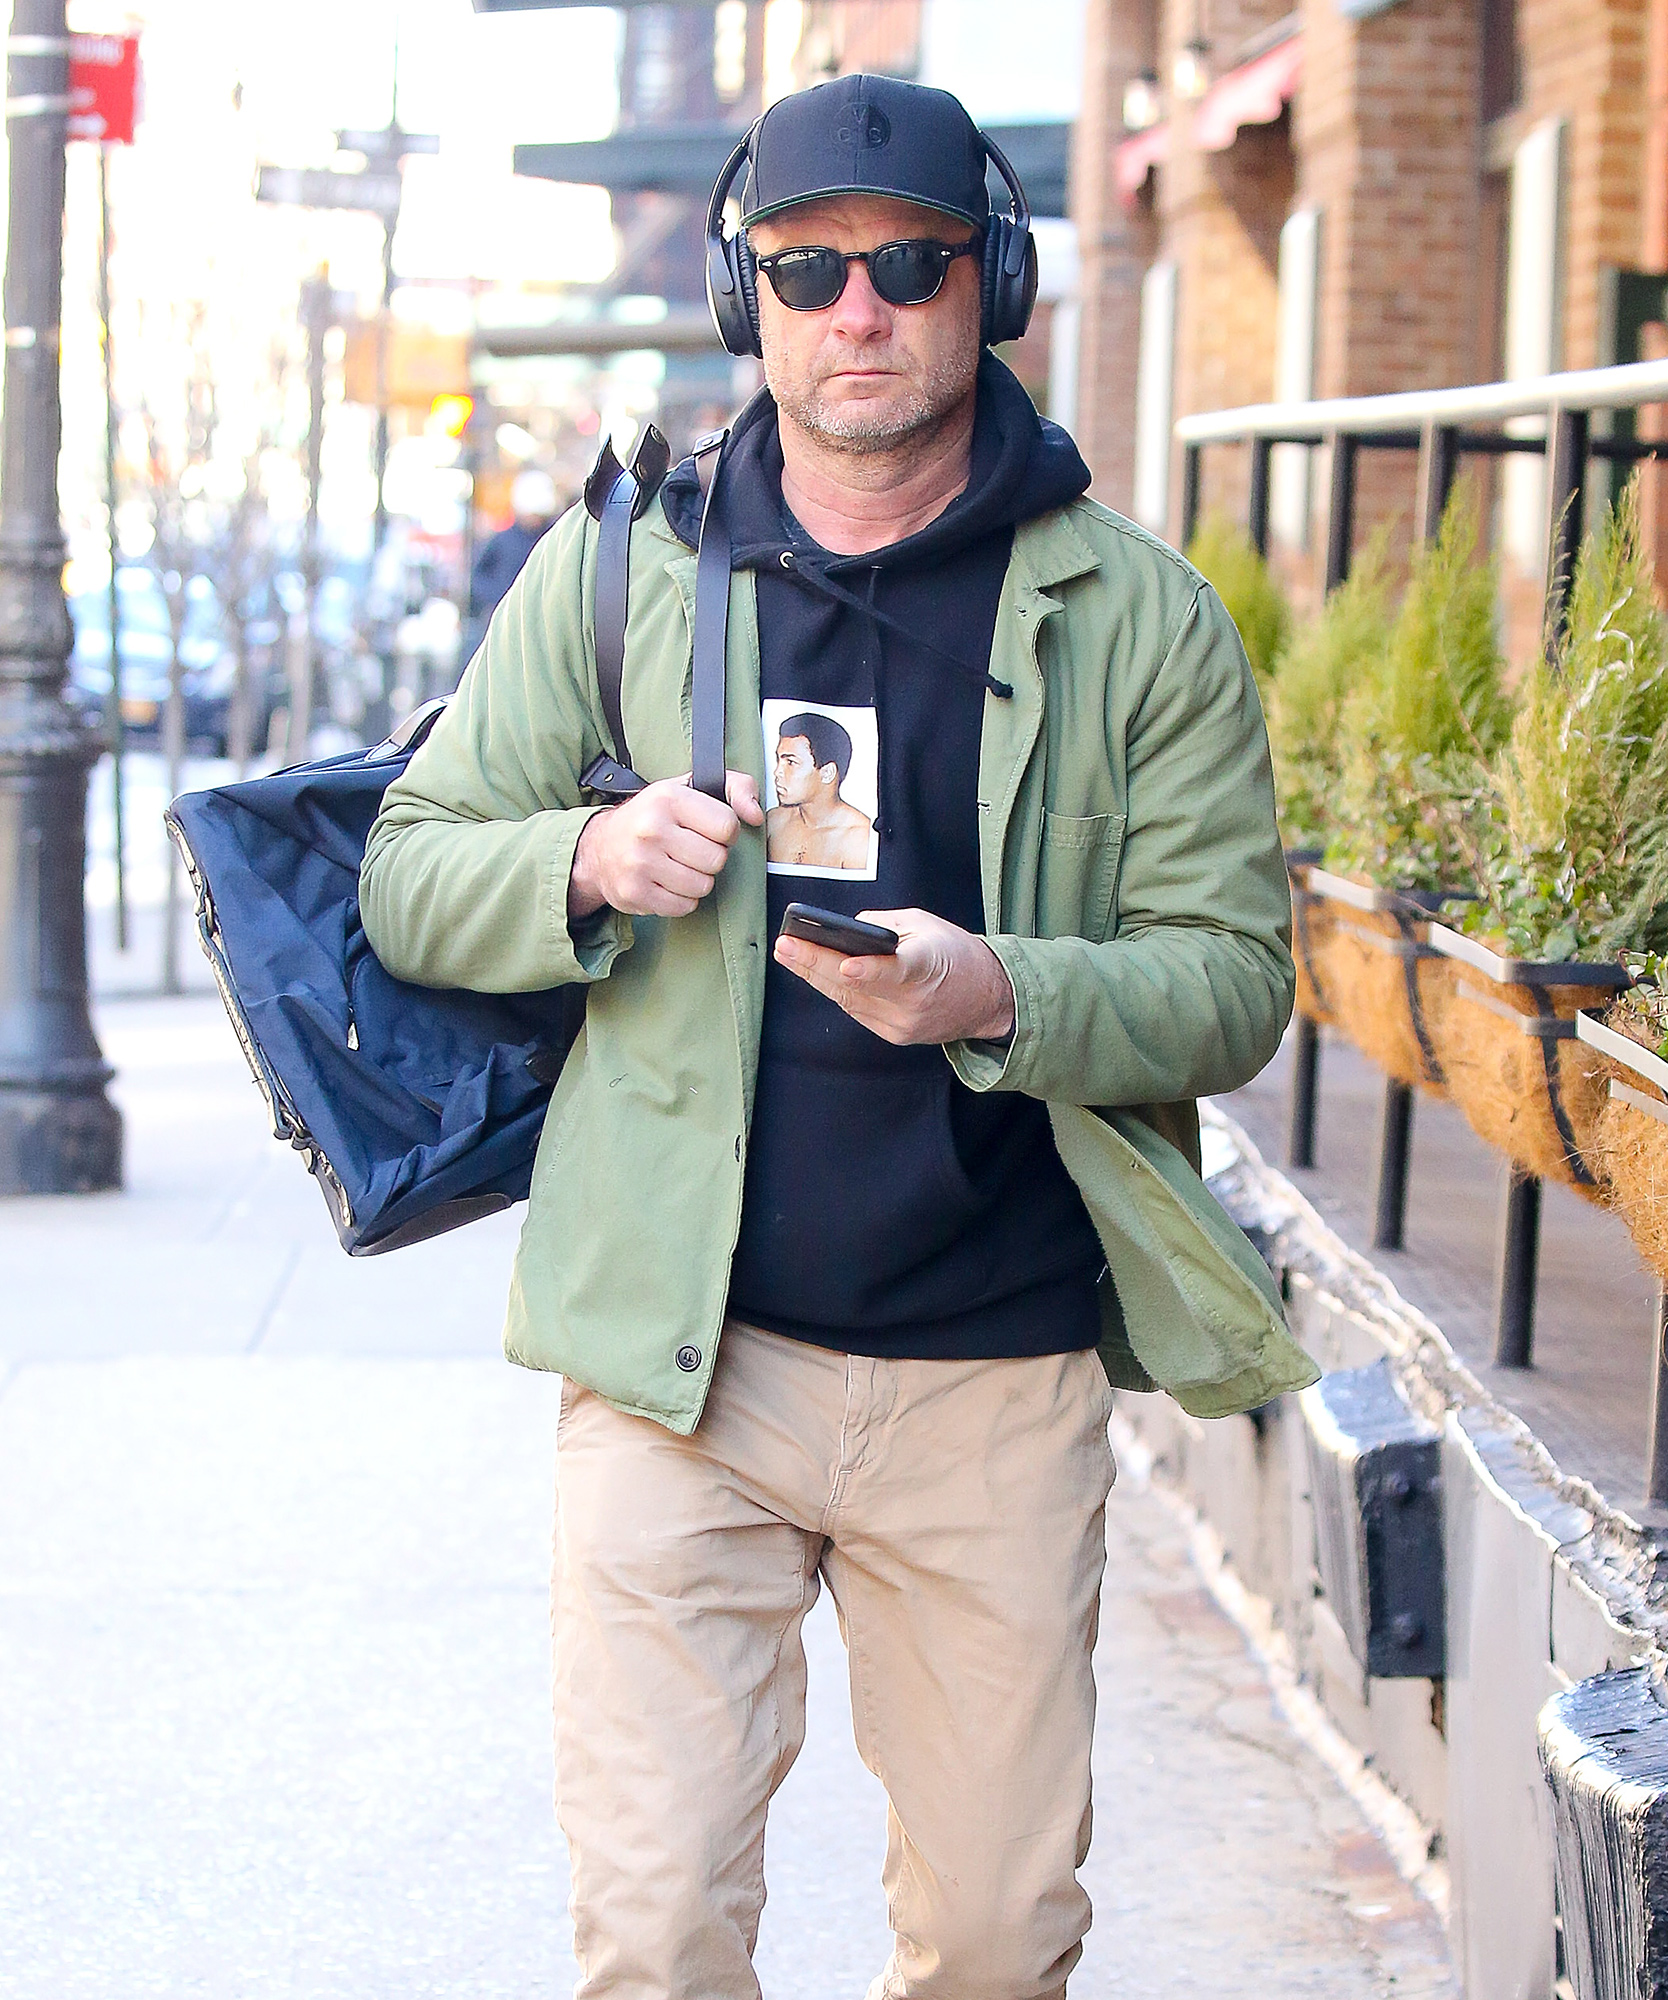 EXCLUSIVE: Liev Schreiber goes incognito while walking around in Tribeca, New York City